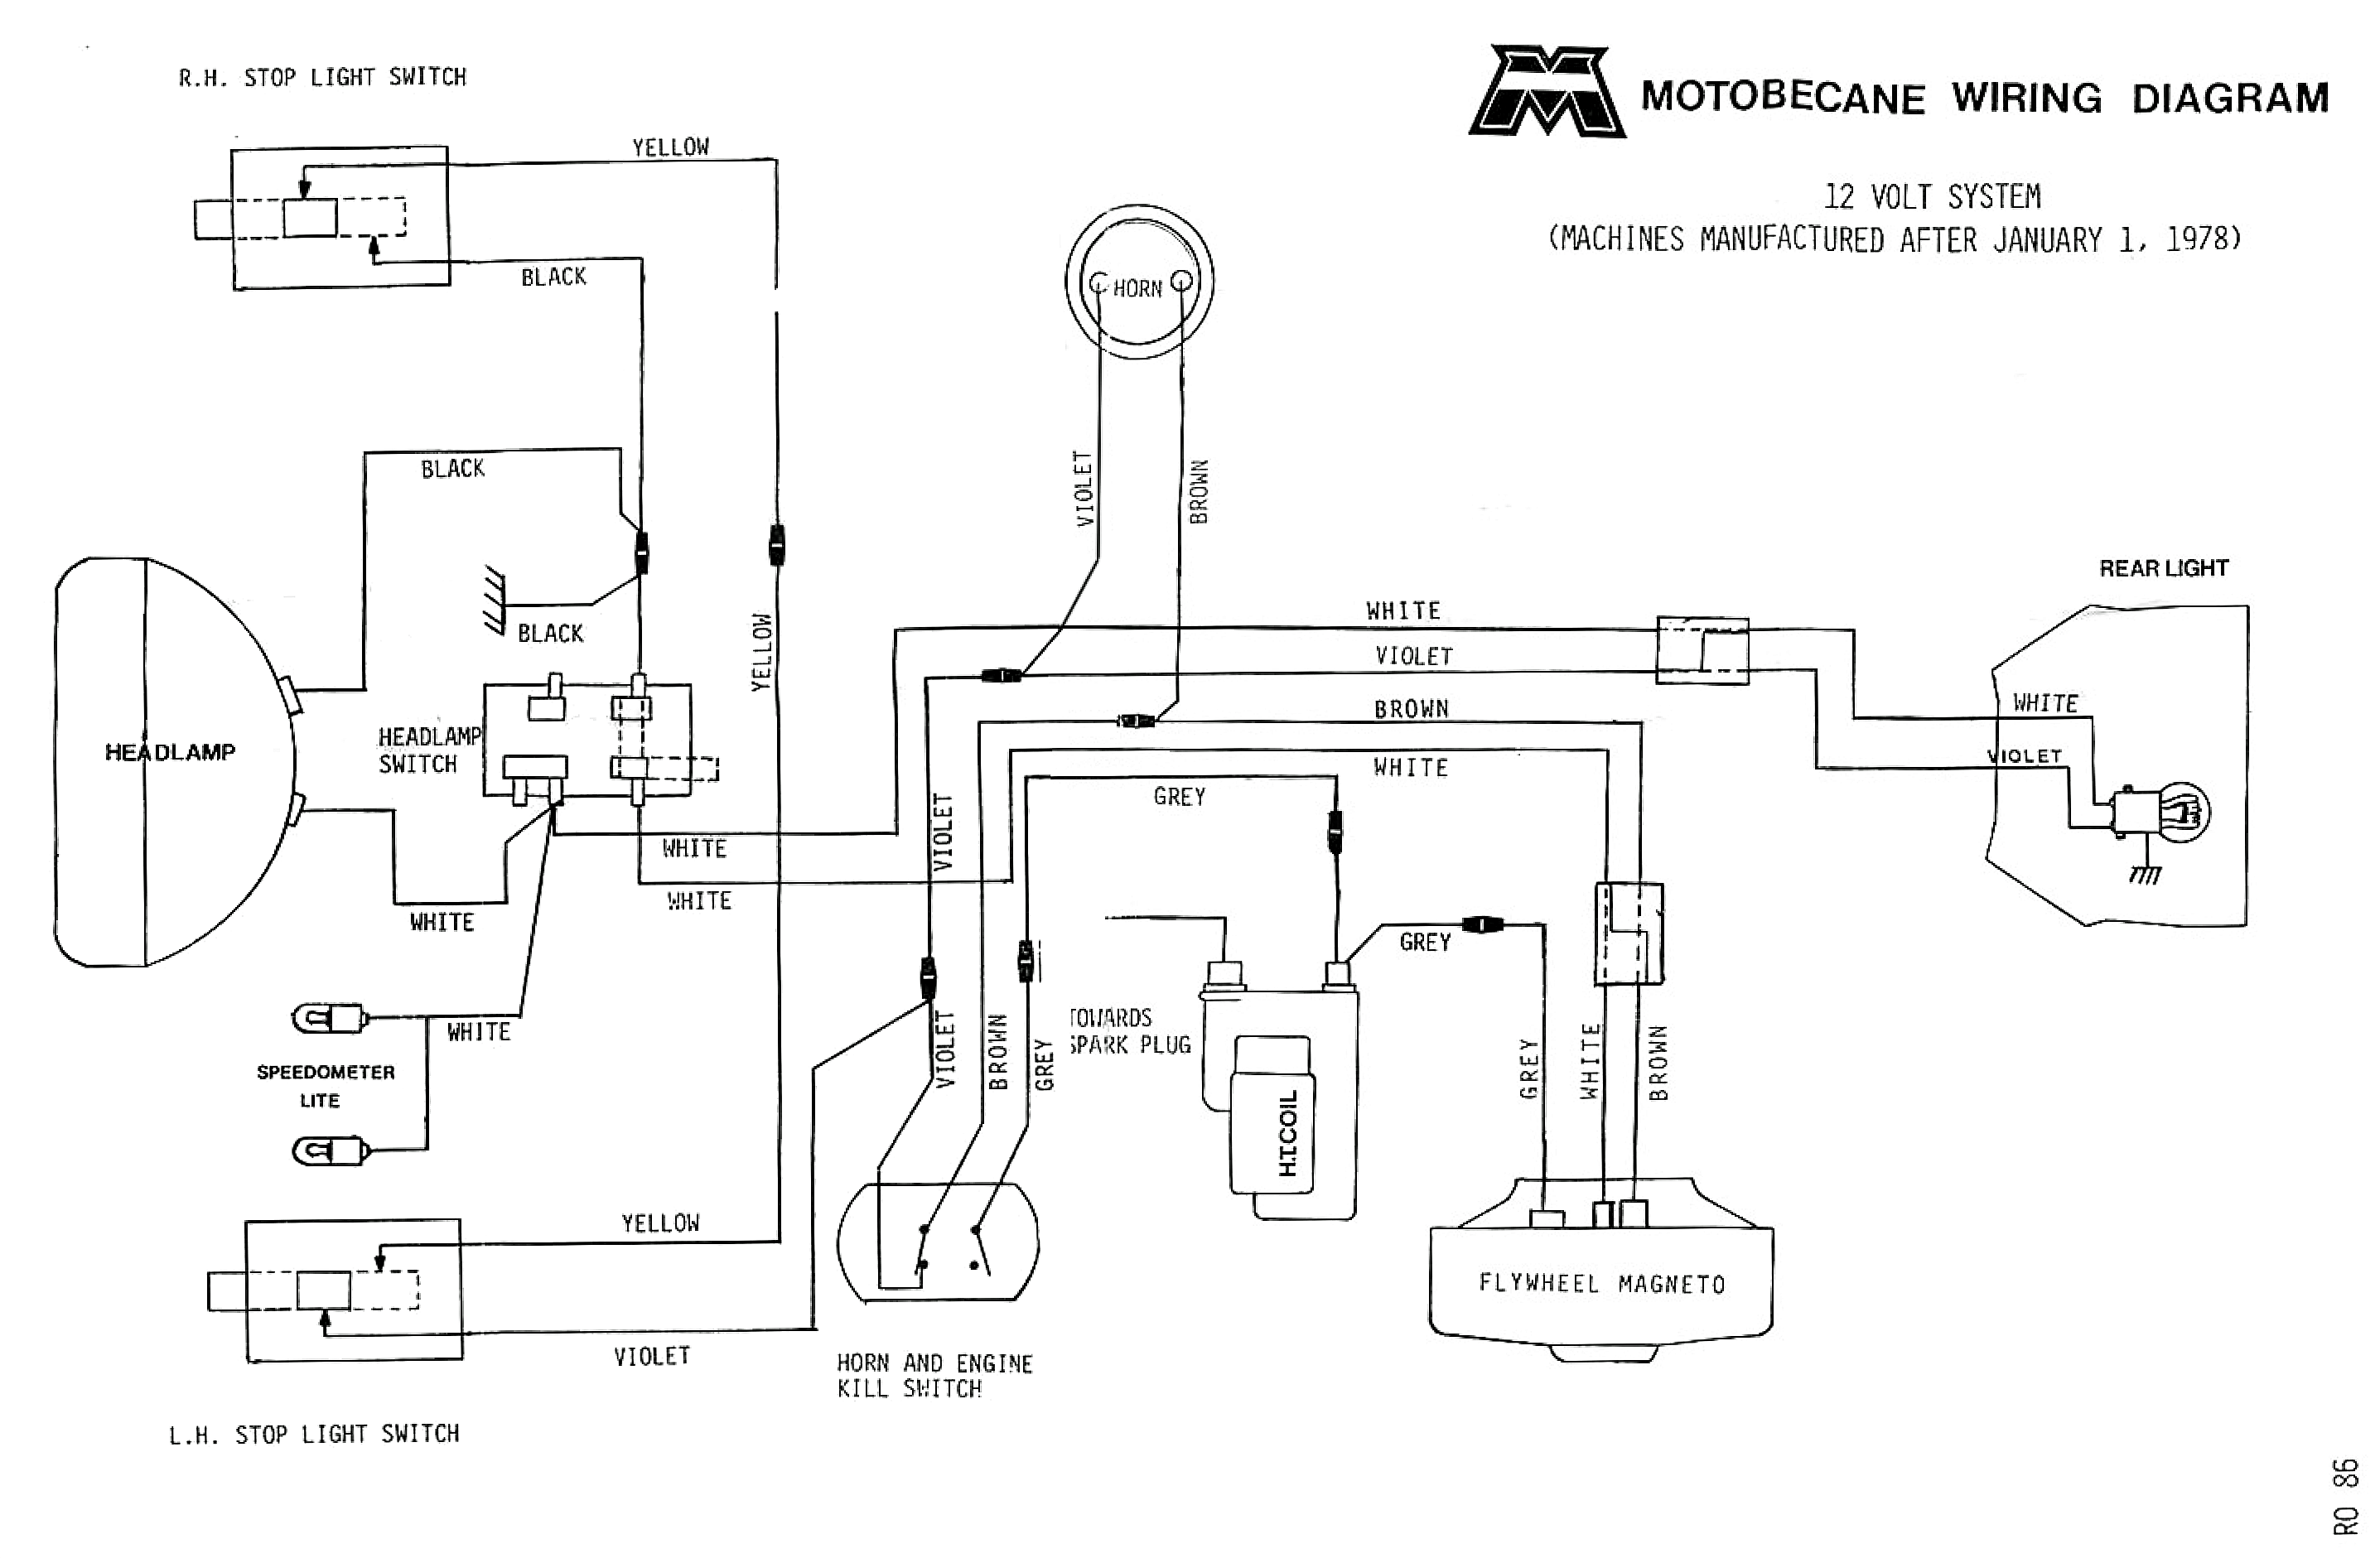 Diagram 995 Case Tractor Wiring Diagram Full Version Hd Quality Wiring Diagram Pvdiagramxtammi Cuartetango It